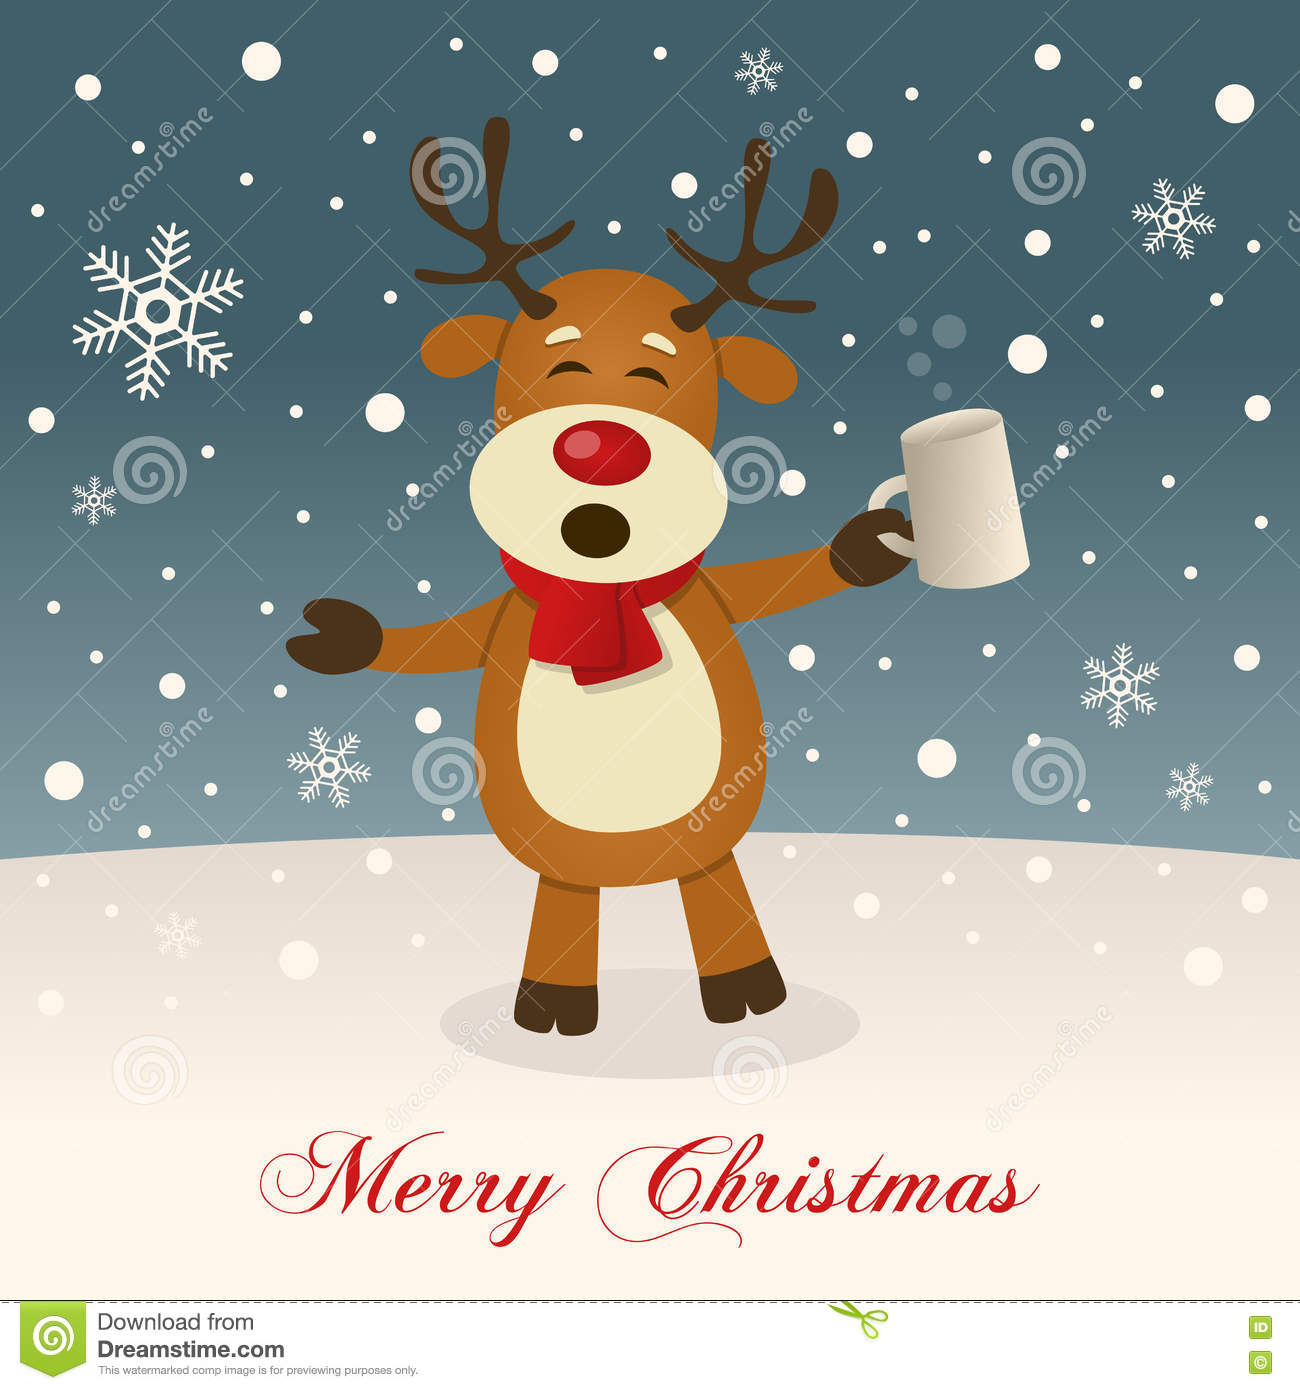 Merry Christmas With Drunk Reindeer Stock Vector Illustration Of